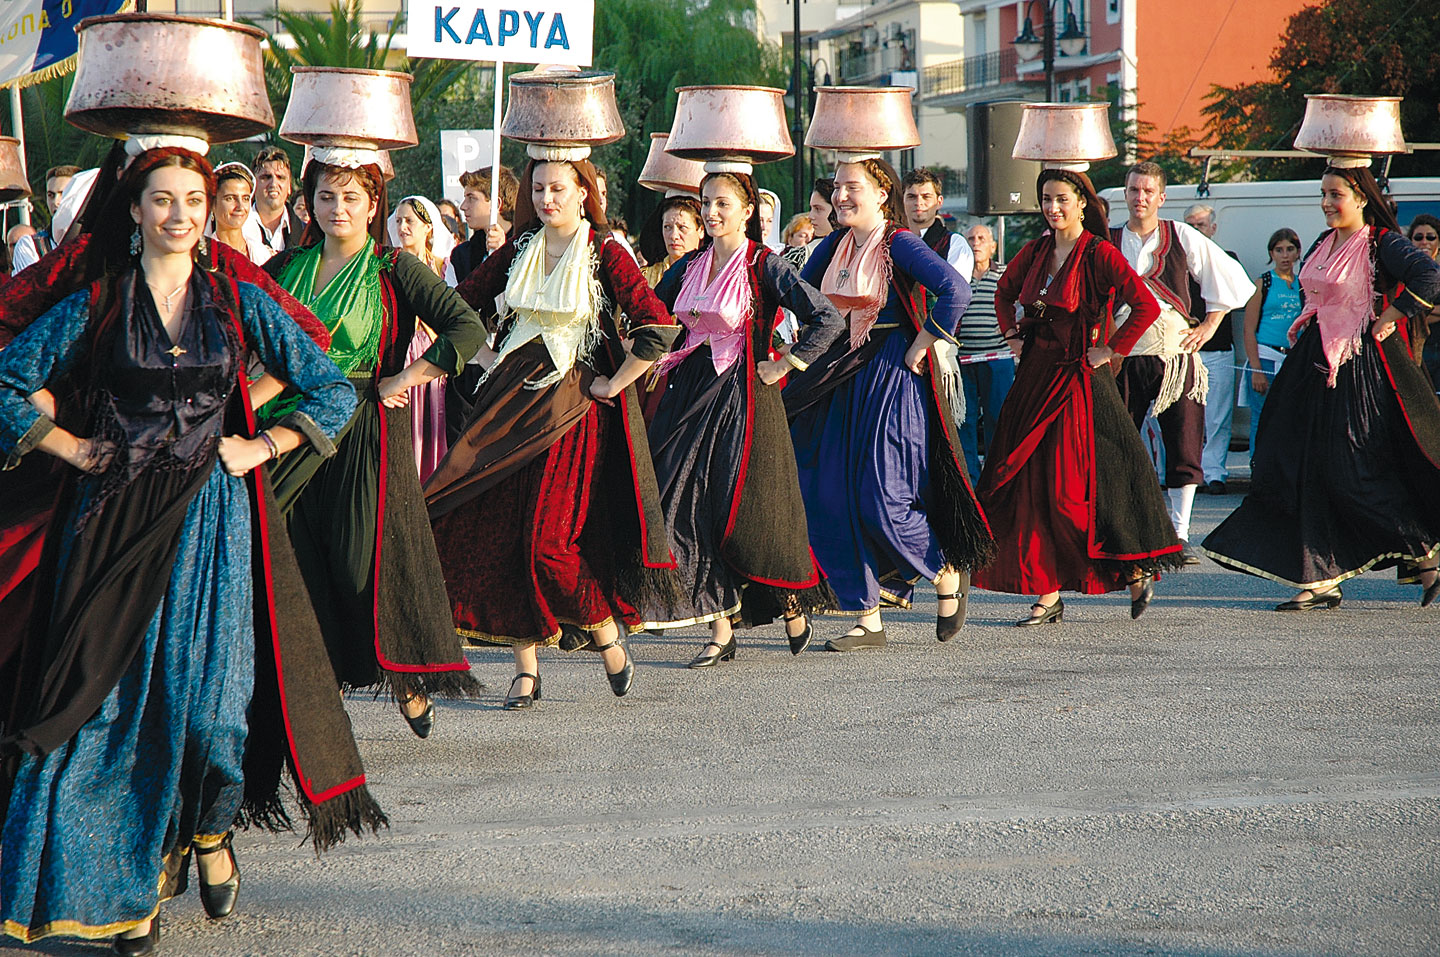 Dancing group from Karya, Lefkada, International Folklore Festival, Lefkada Slow Guide